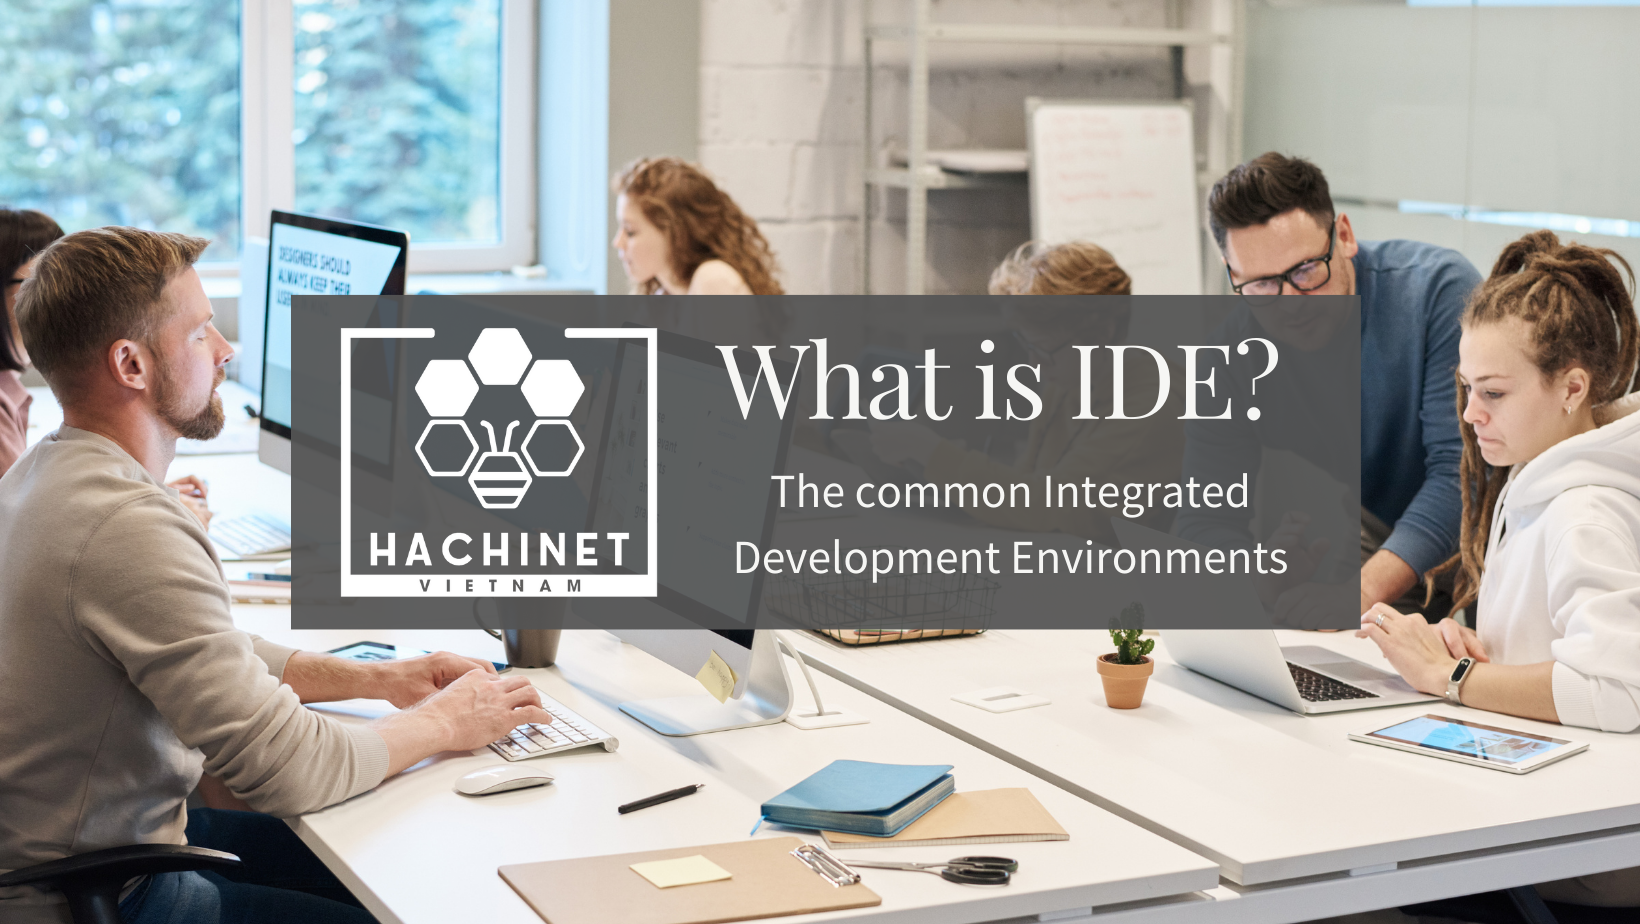 What is IDE? The common Integrated Development Environments